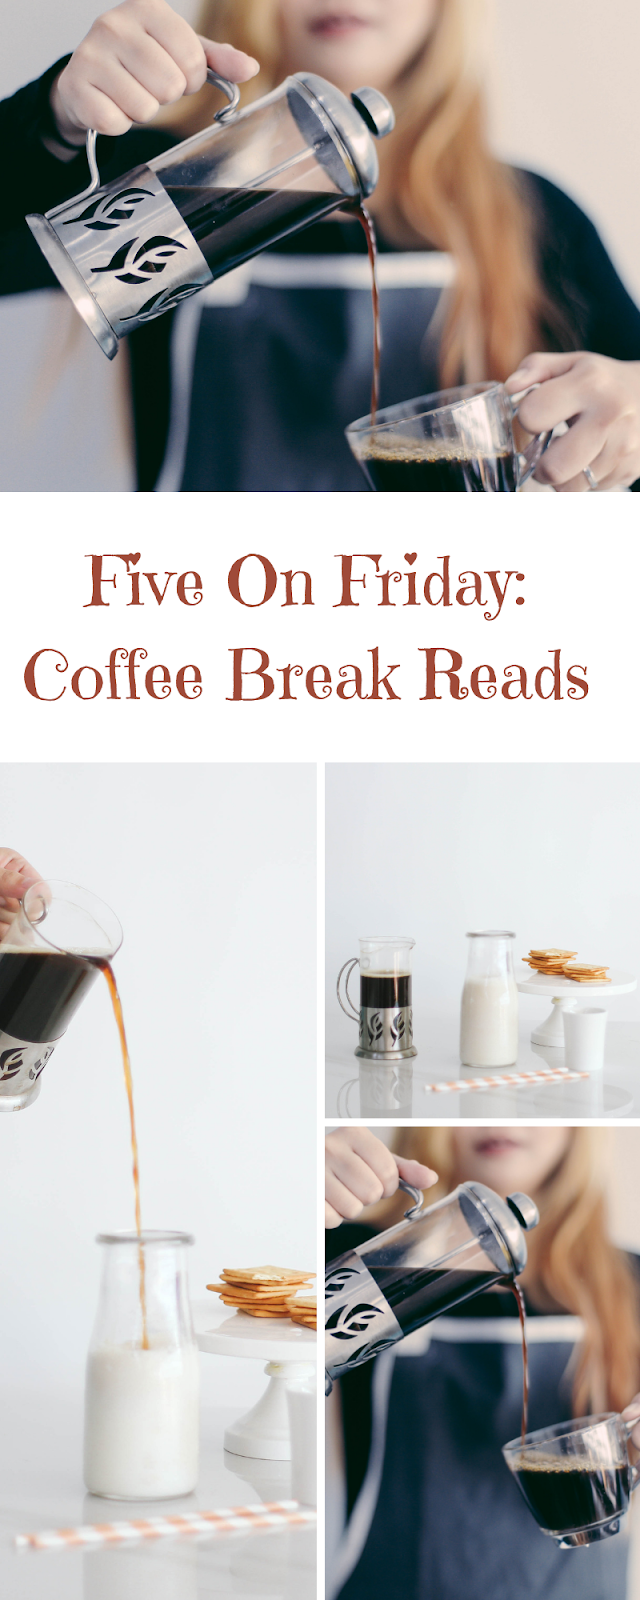 19/10/2018 Five On Friday: Coffee Break Reads